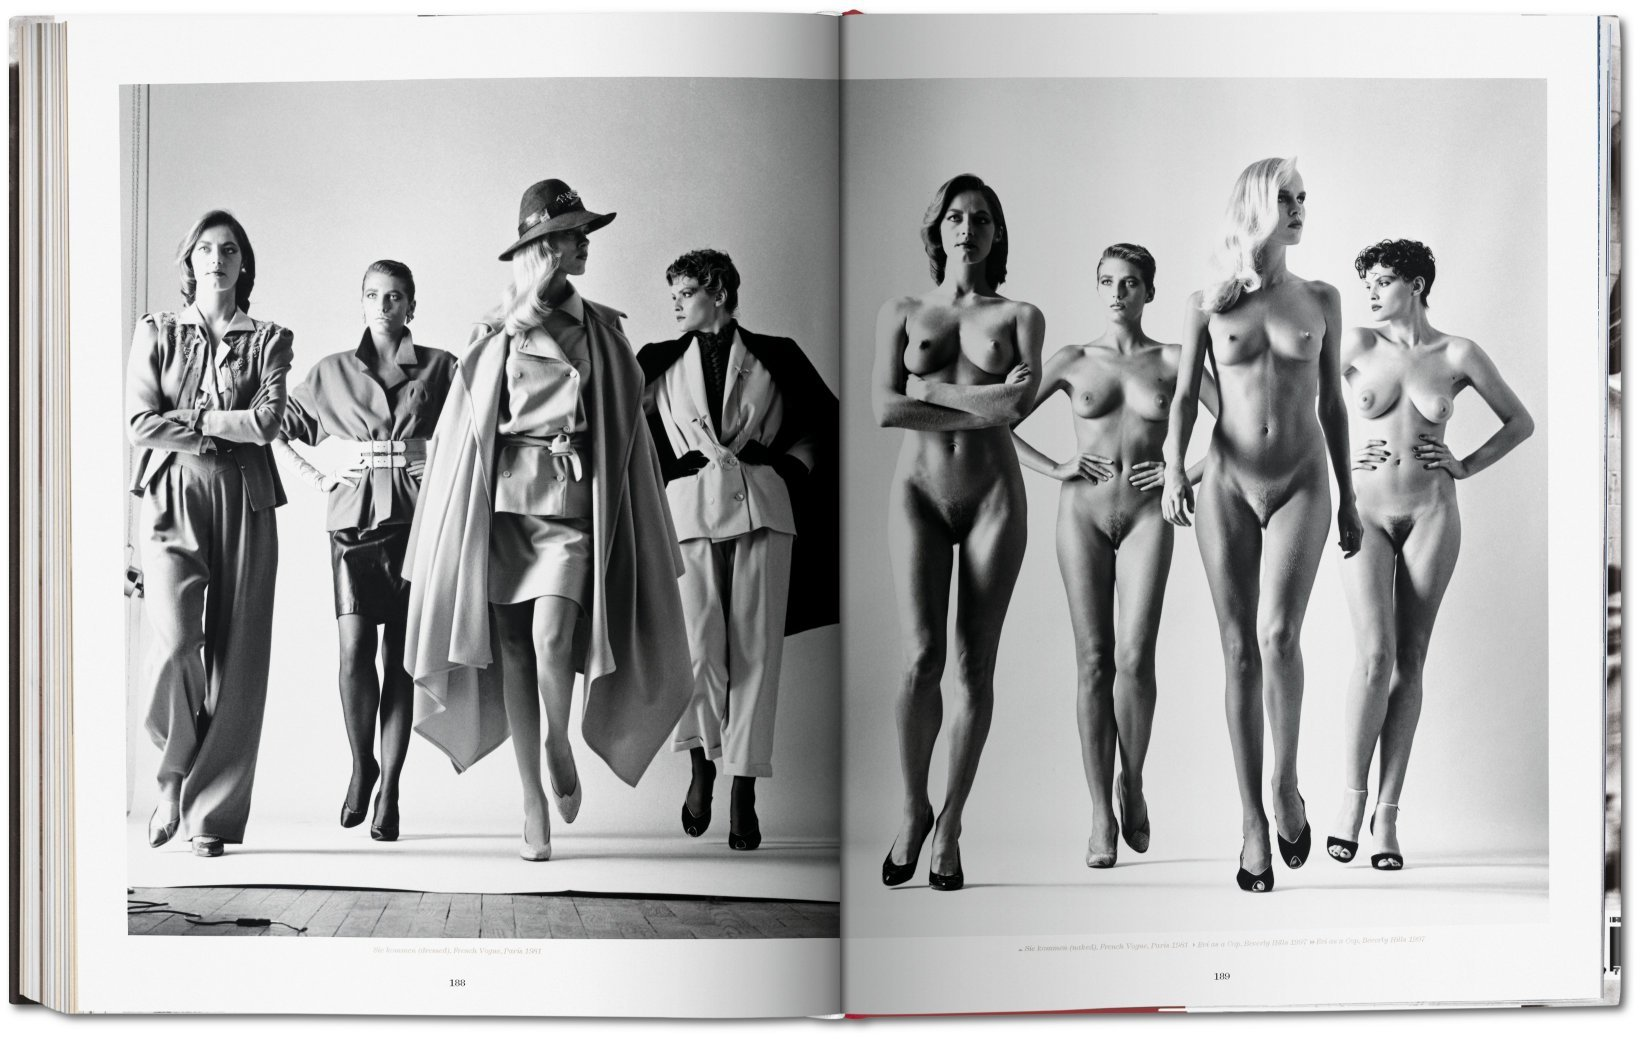 Fotó: Helmut Newton: They 're Coming, Dressed/Naked, Paris, from the series Big Nudes, 1981 © Helmut Newton